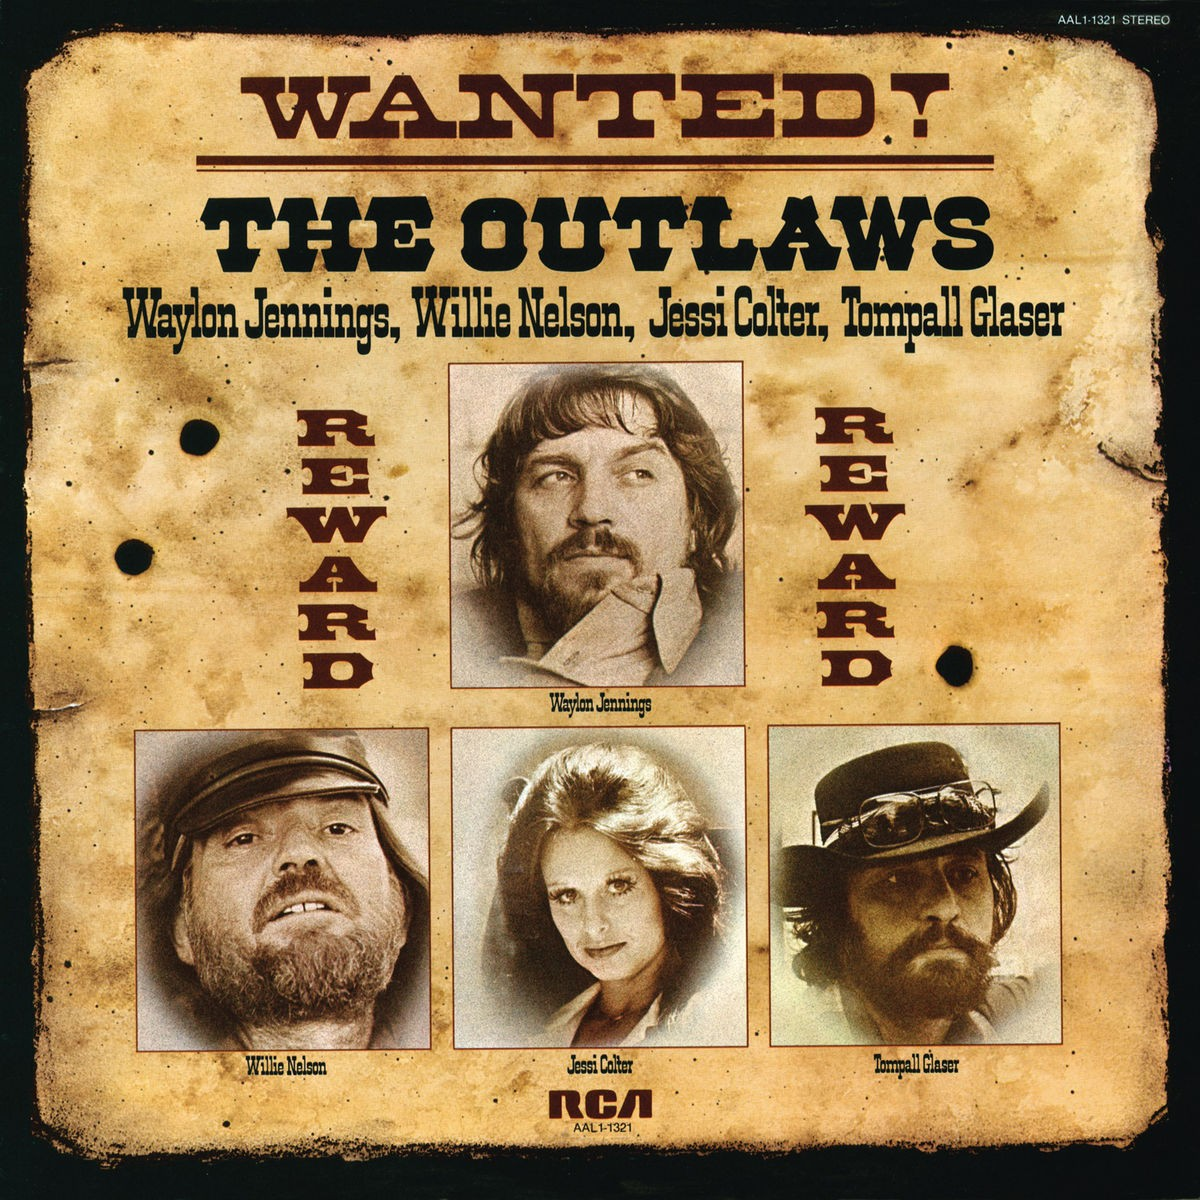 Waylon Jennings , Willie Nelson , Jessi Colter & Tompall Glaser - Wanted! The Outlaws VINYL - 19075958971